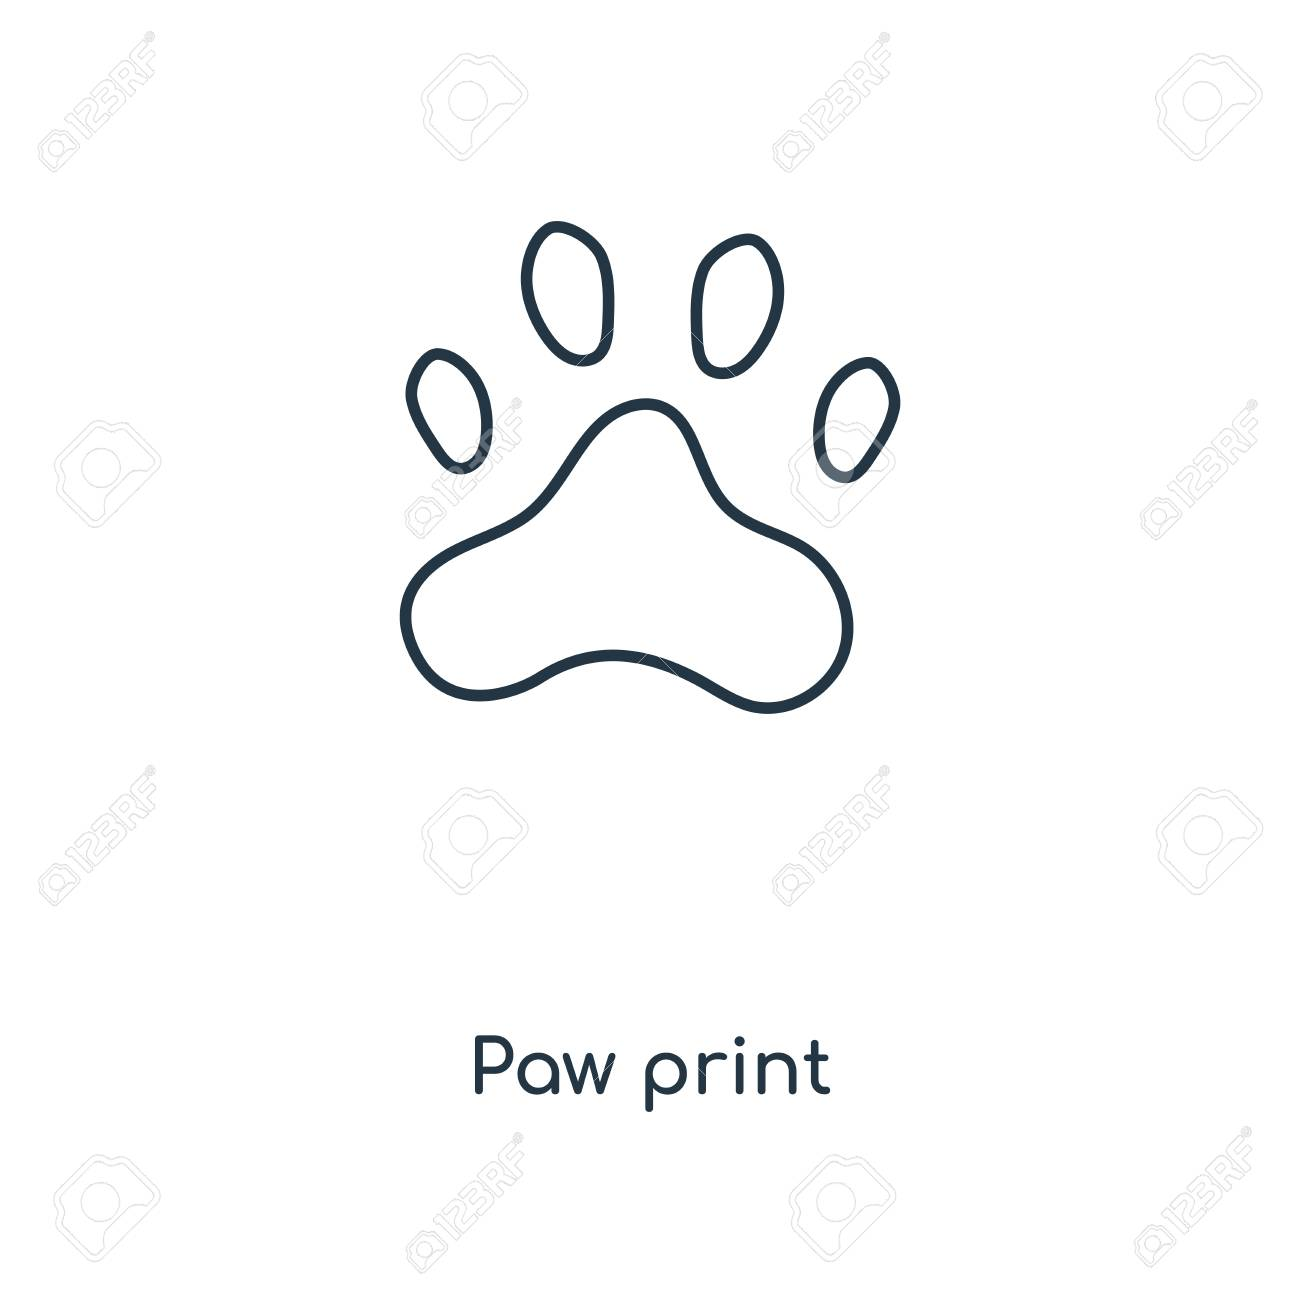 Paw print concept line icon  Linear Paw print concept outline